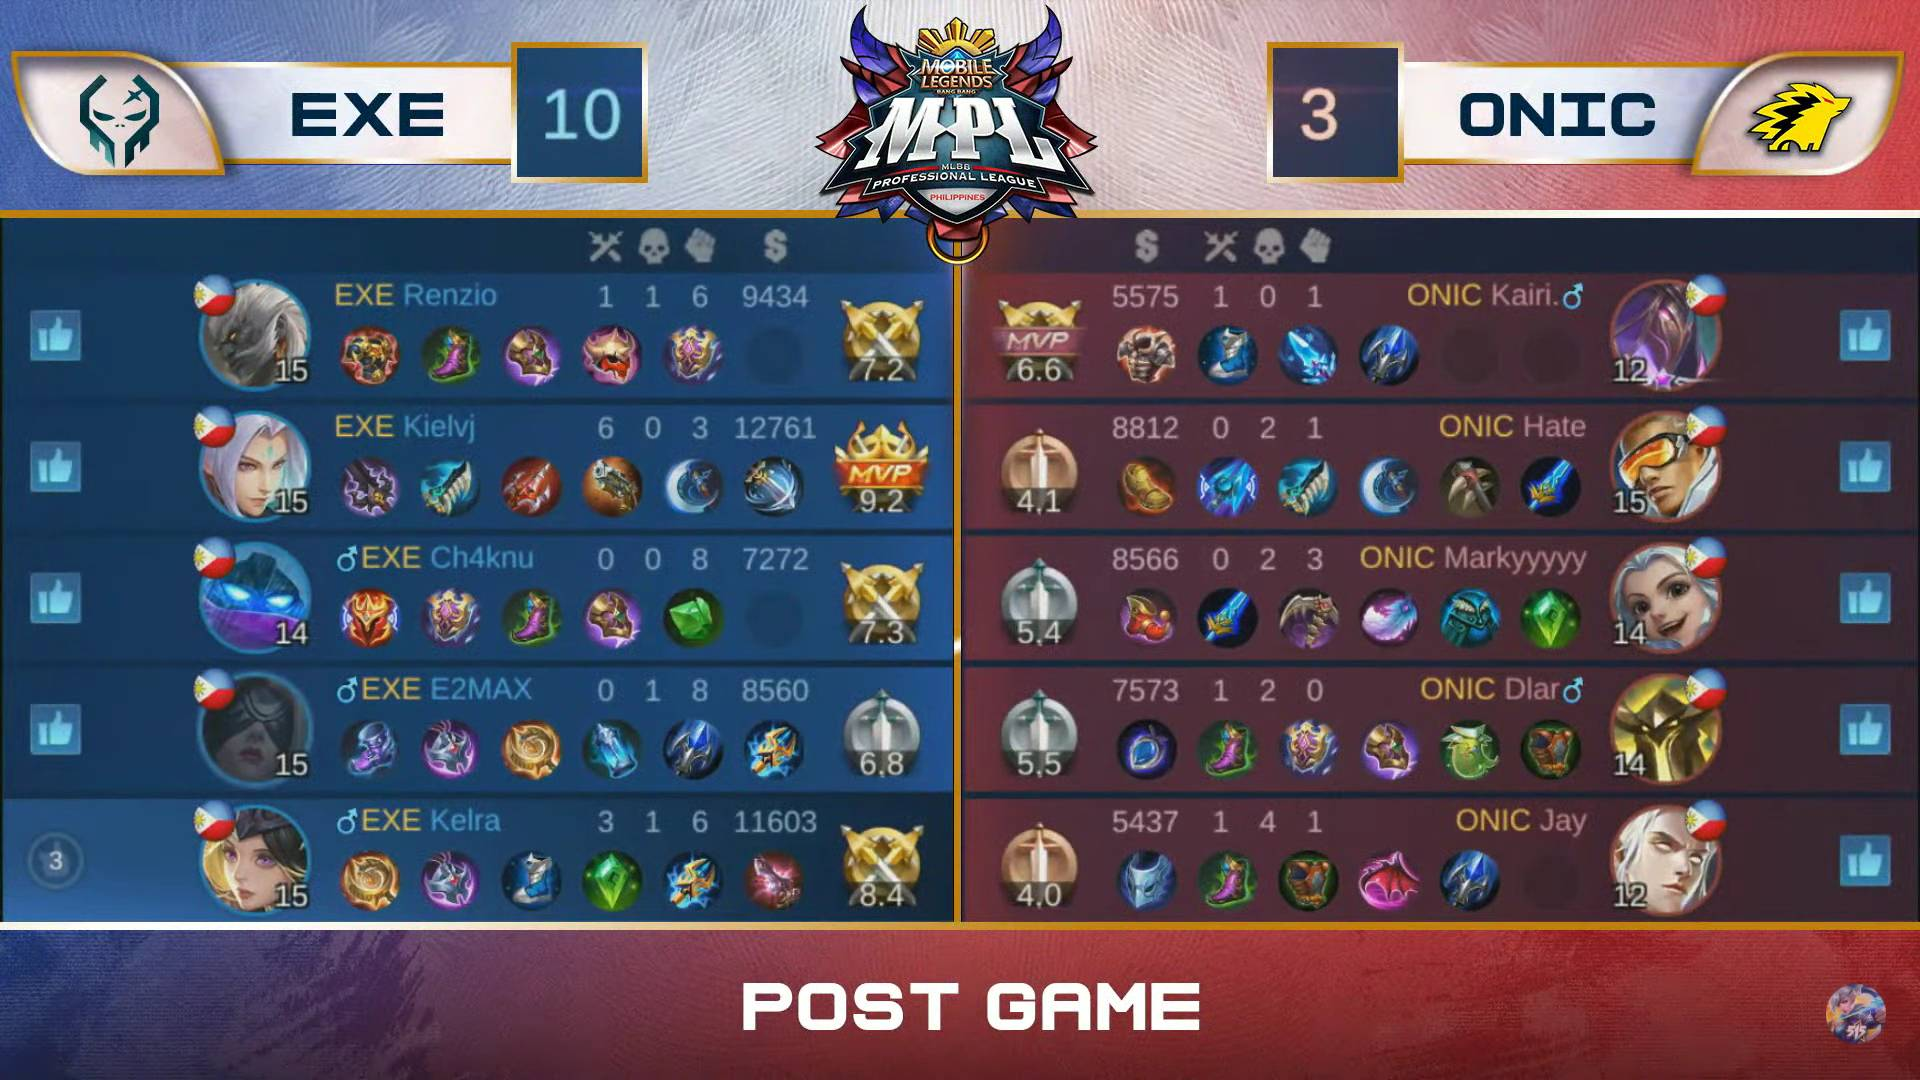 MPL-PH-Season-7-ONIC-def-Execration-Game-2 Hate deals Execration heartbreak as ONIC rises to third in MPL PH ESports Mobile Legends MPL-PH News  - philippine sports news